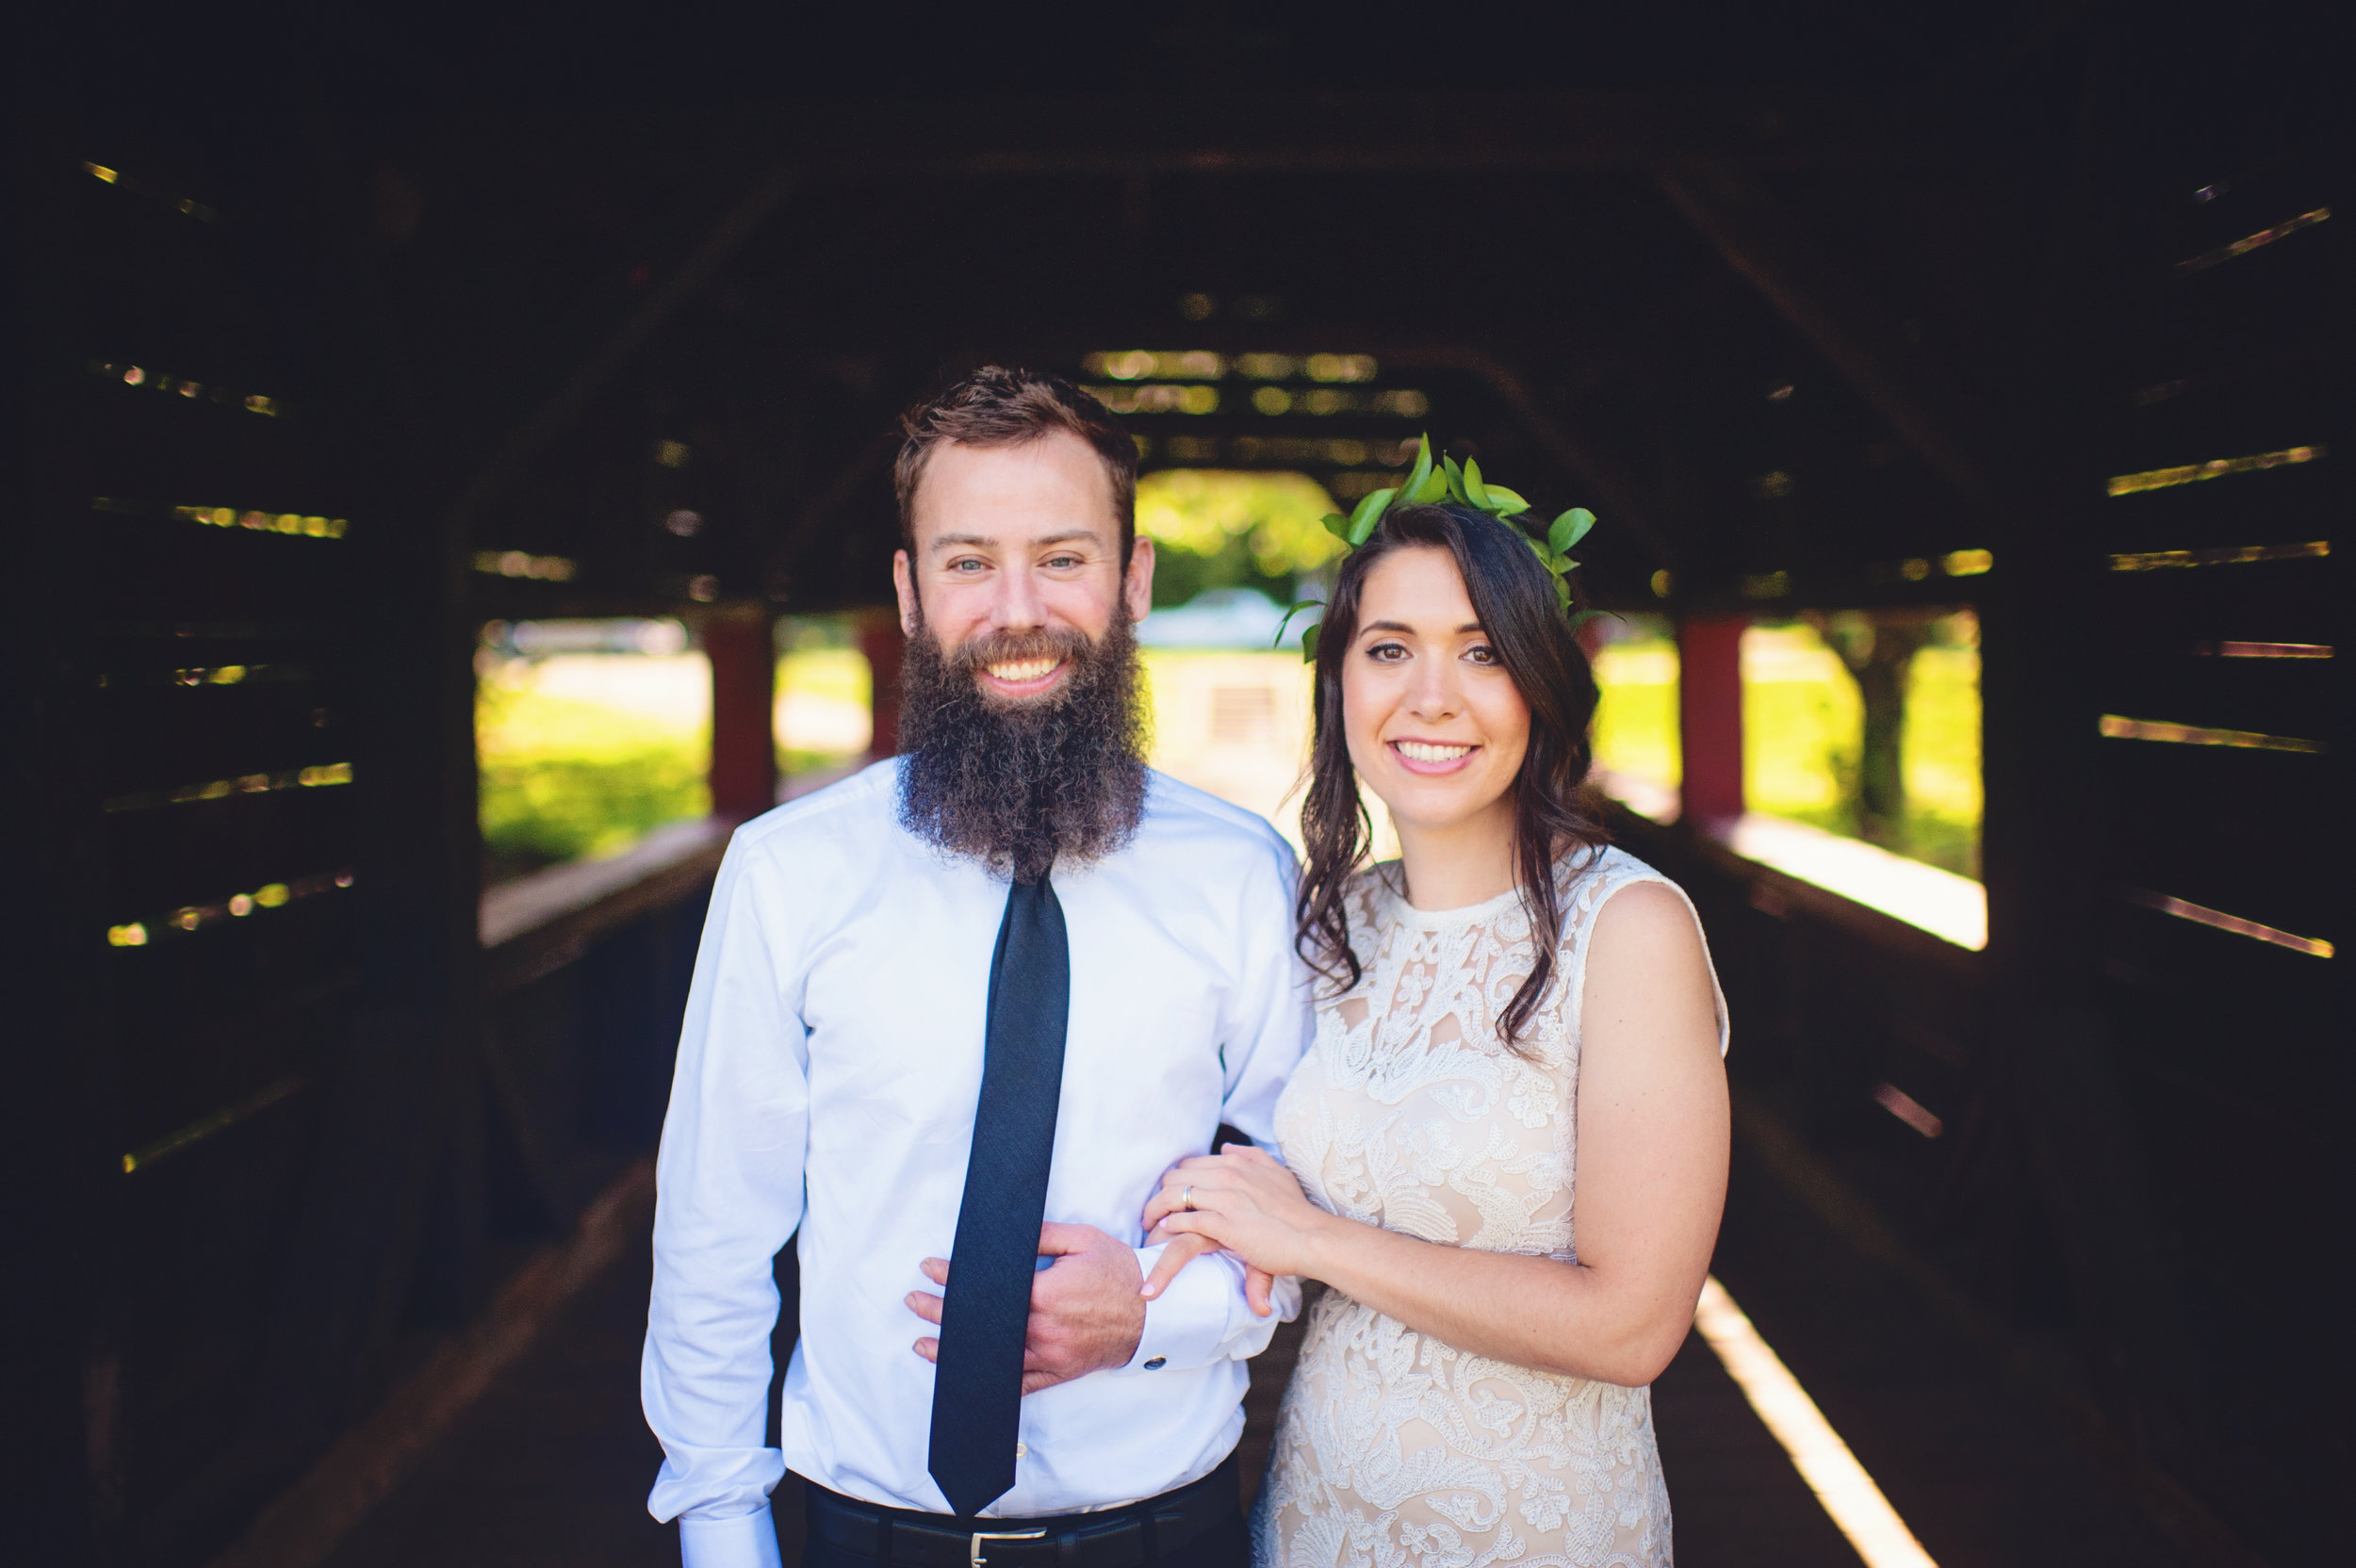 """""""If you want great photos and a great time too, this is your guy."""" - What an amazing photographer! I work in the wedding industry myself and I chose Brad based off his creativity and positive spirit. If you want great photos and wanna have a great time too, this is your guy. All of our guests keep commenting how nice and cool the photographer was. His prices are REALLY reasonable for the area. Most importantly, I LOVE all the pictures.– Anna and Bobby"""